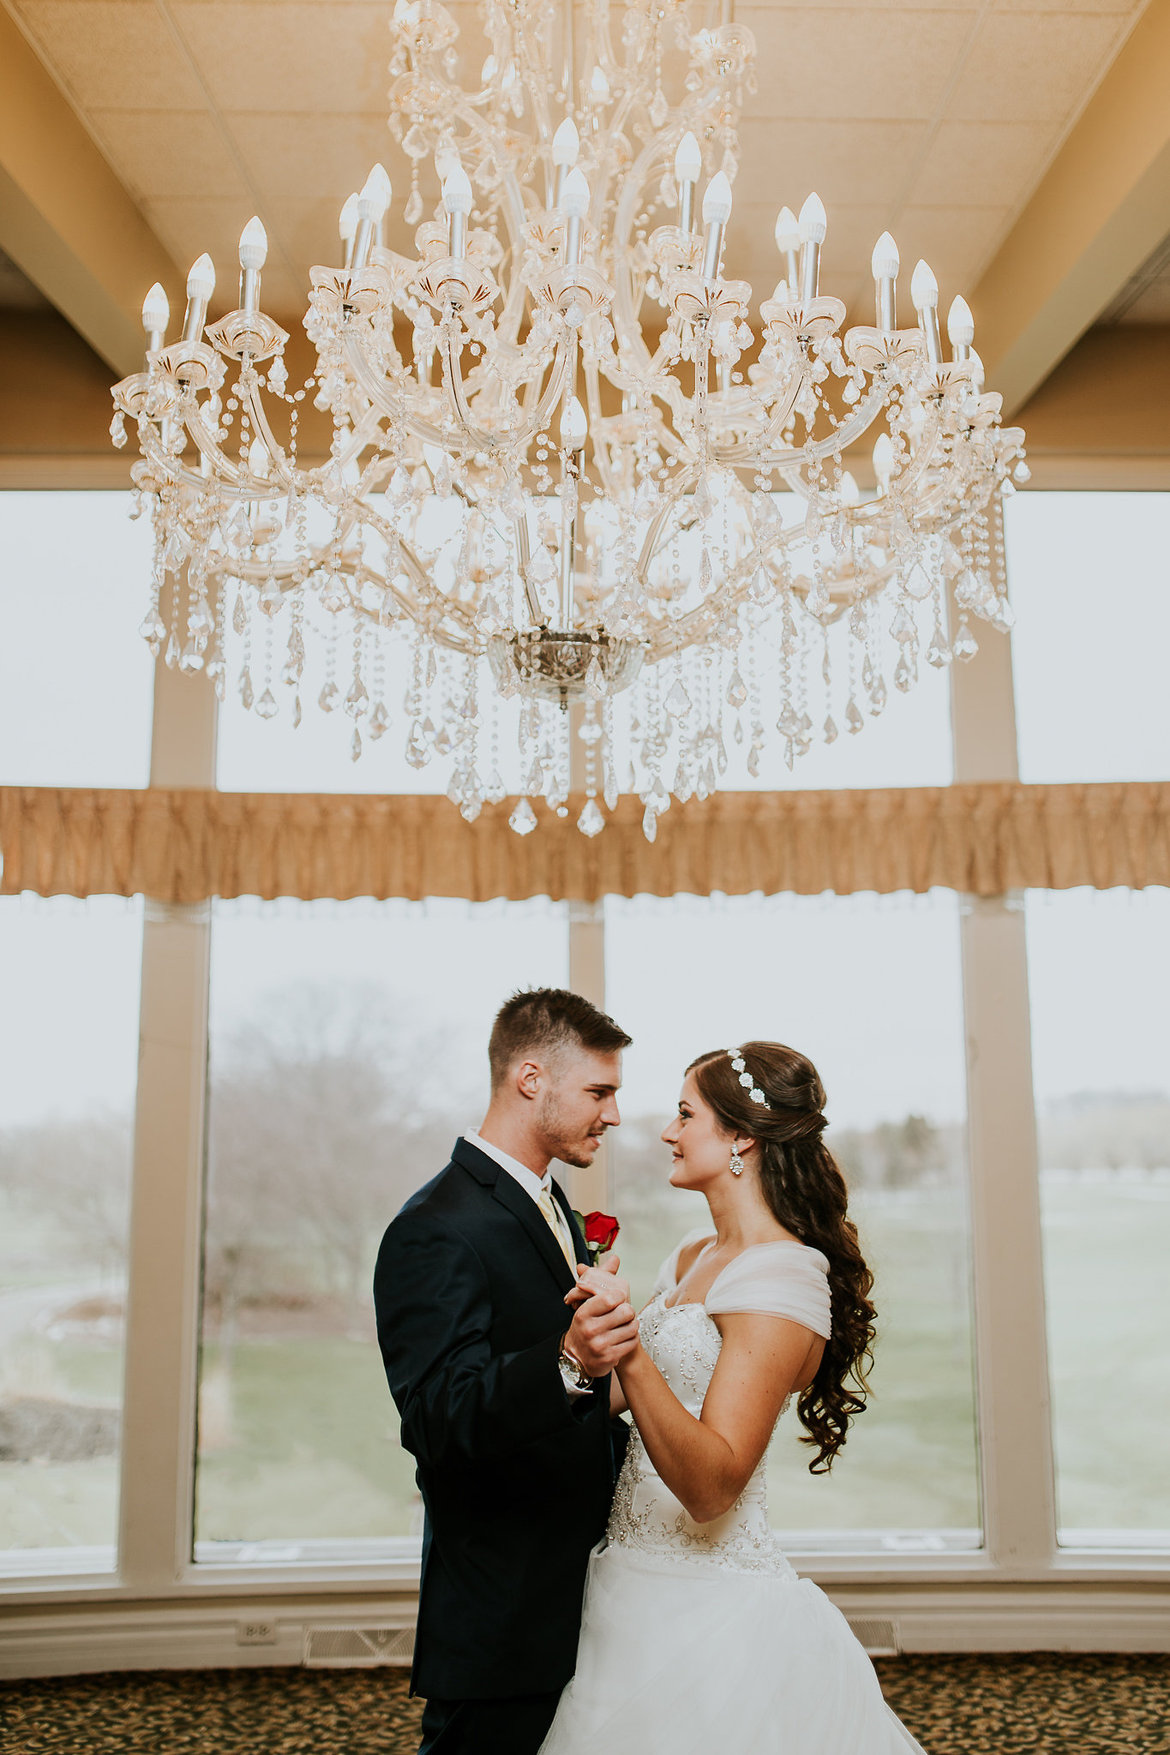 Wedding Inspiration: Beauty & the Beast | BridalGuide